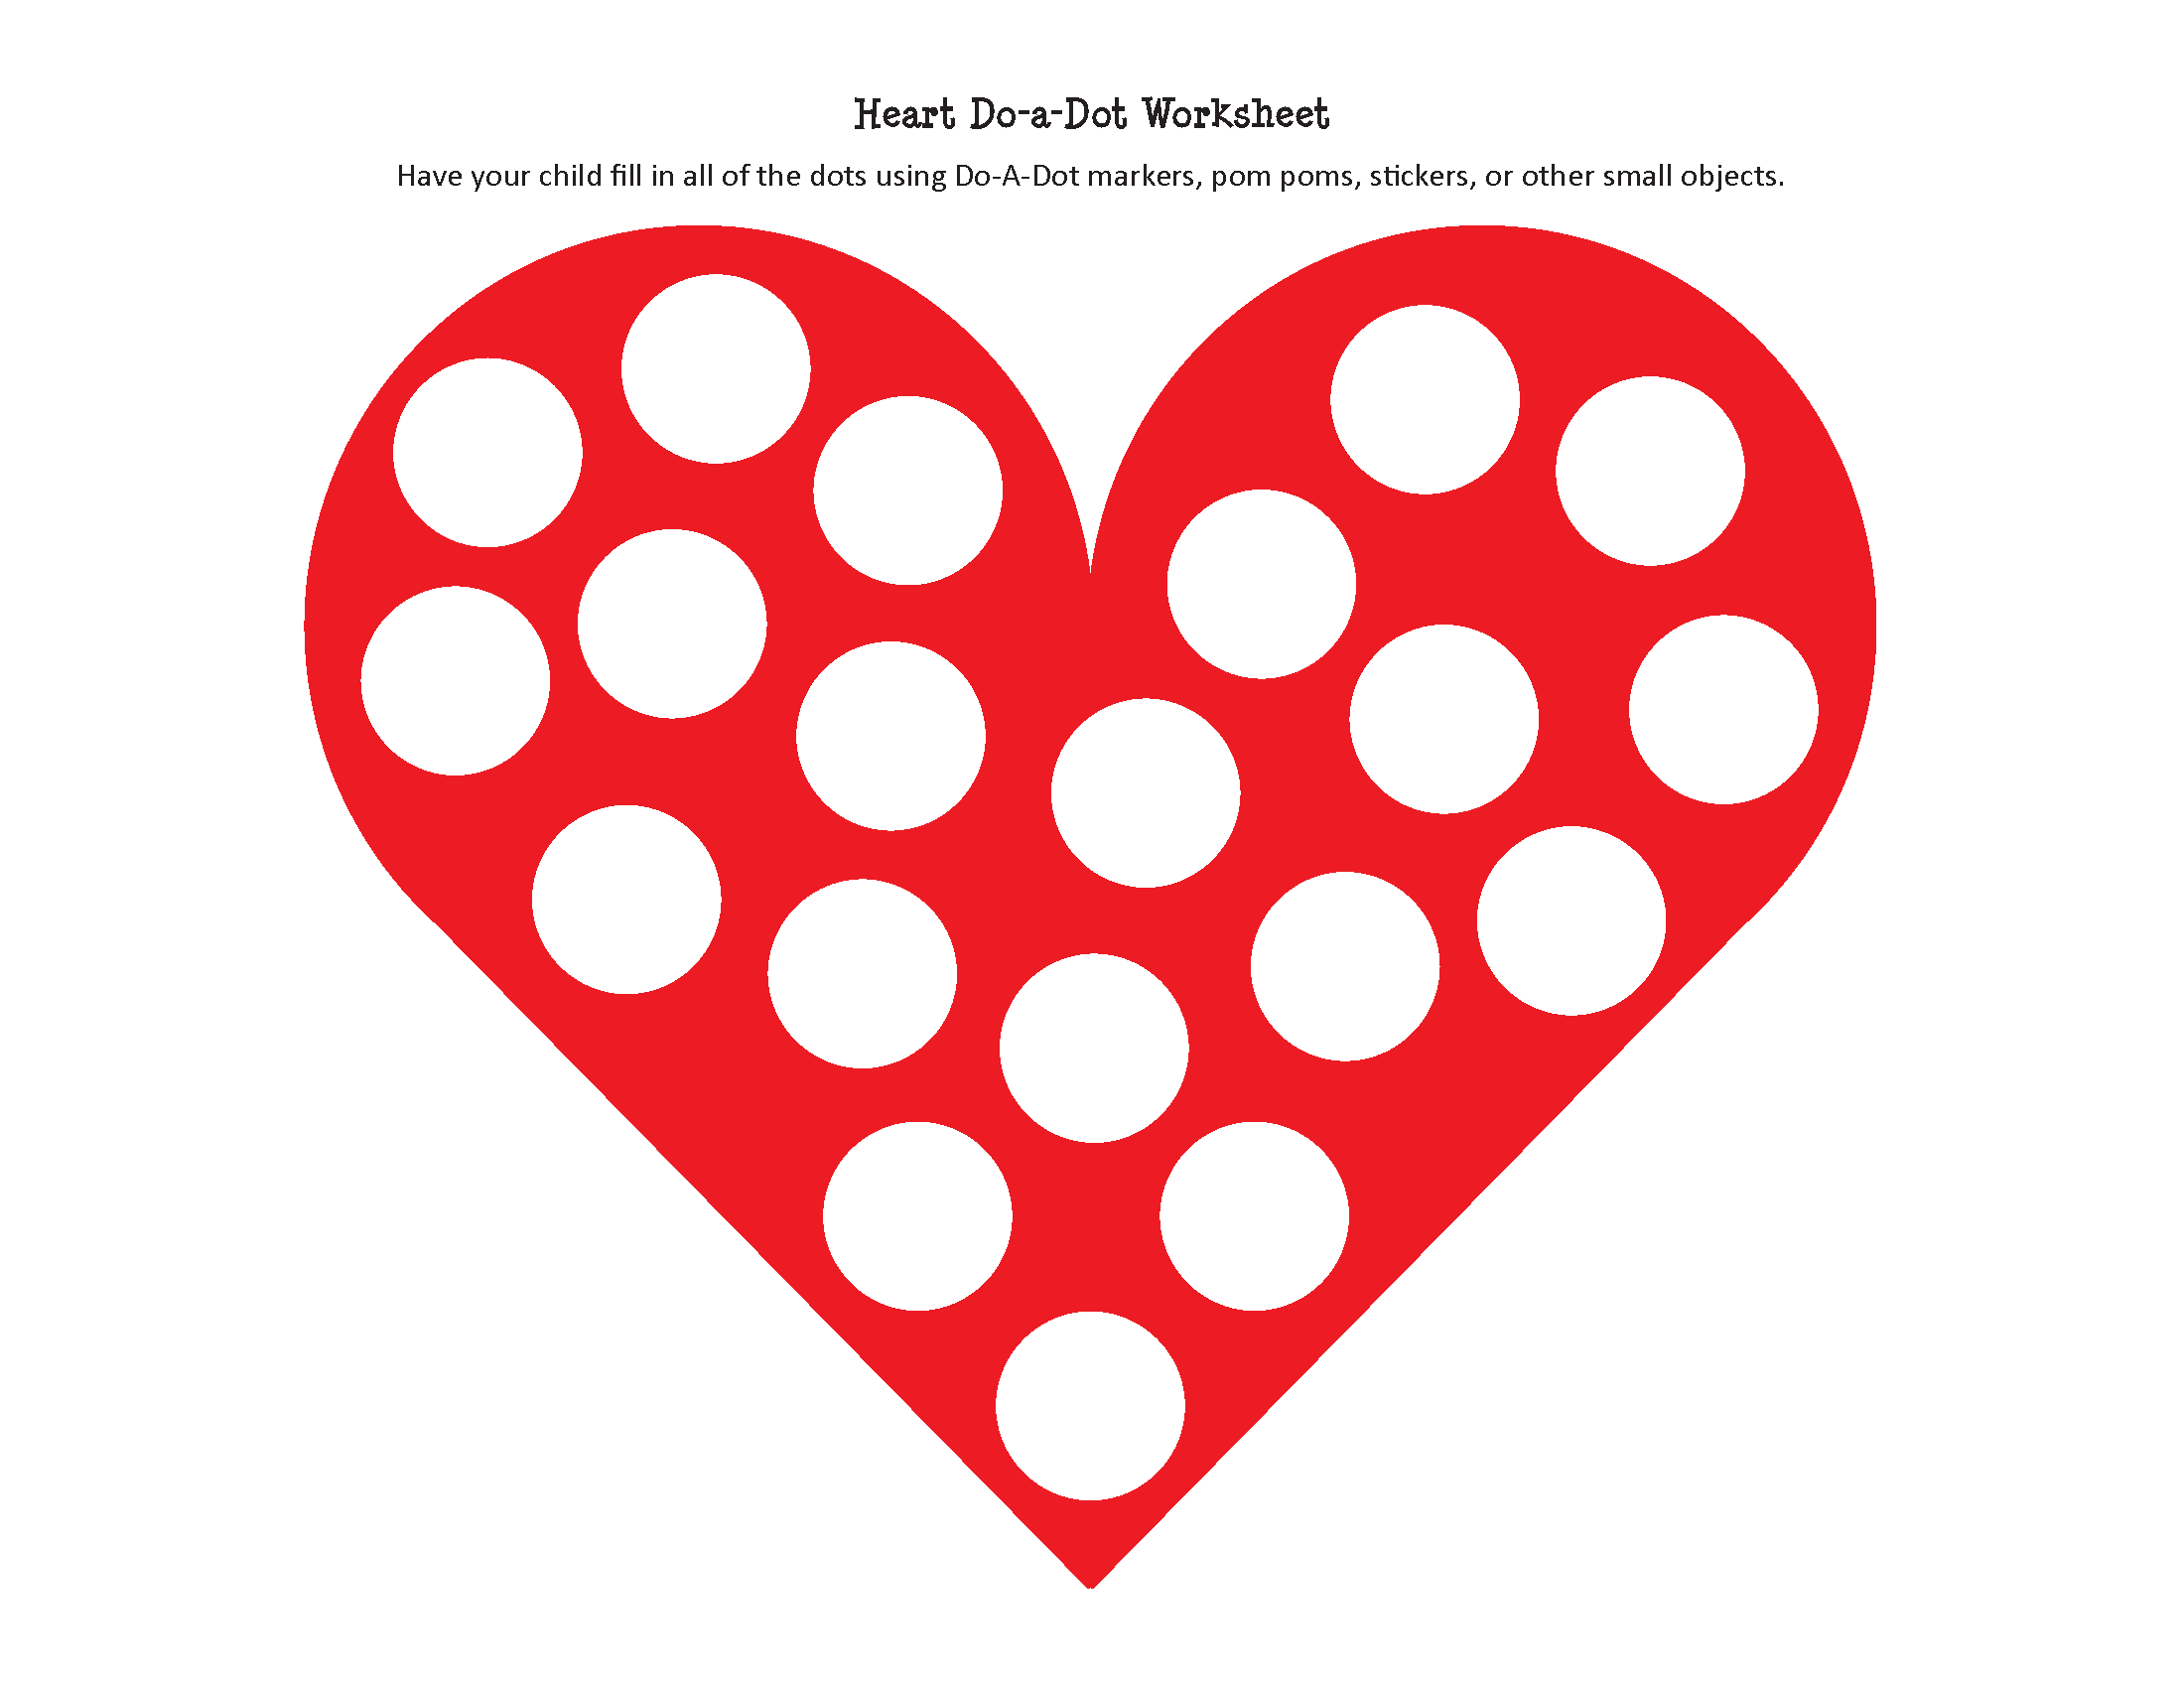 Free Printable Preschool Worksheets Age 4 and Heart Do A Dot Worksheet Free Printable T Of Curiosity